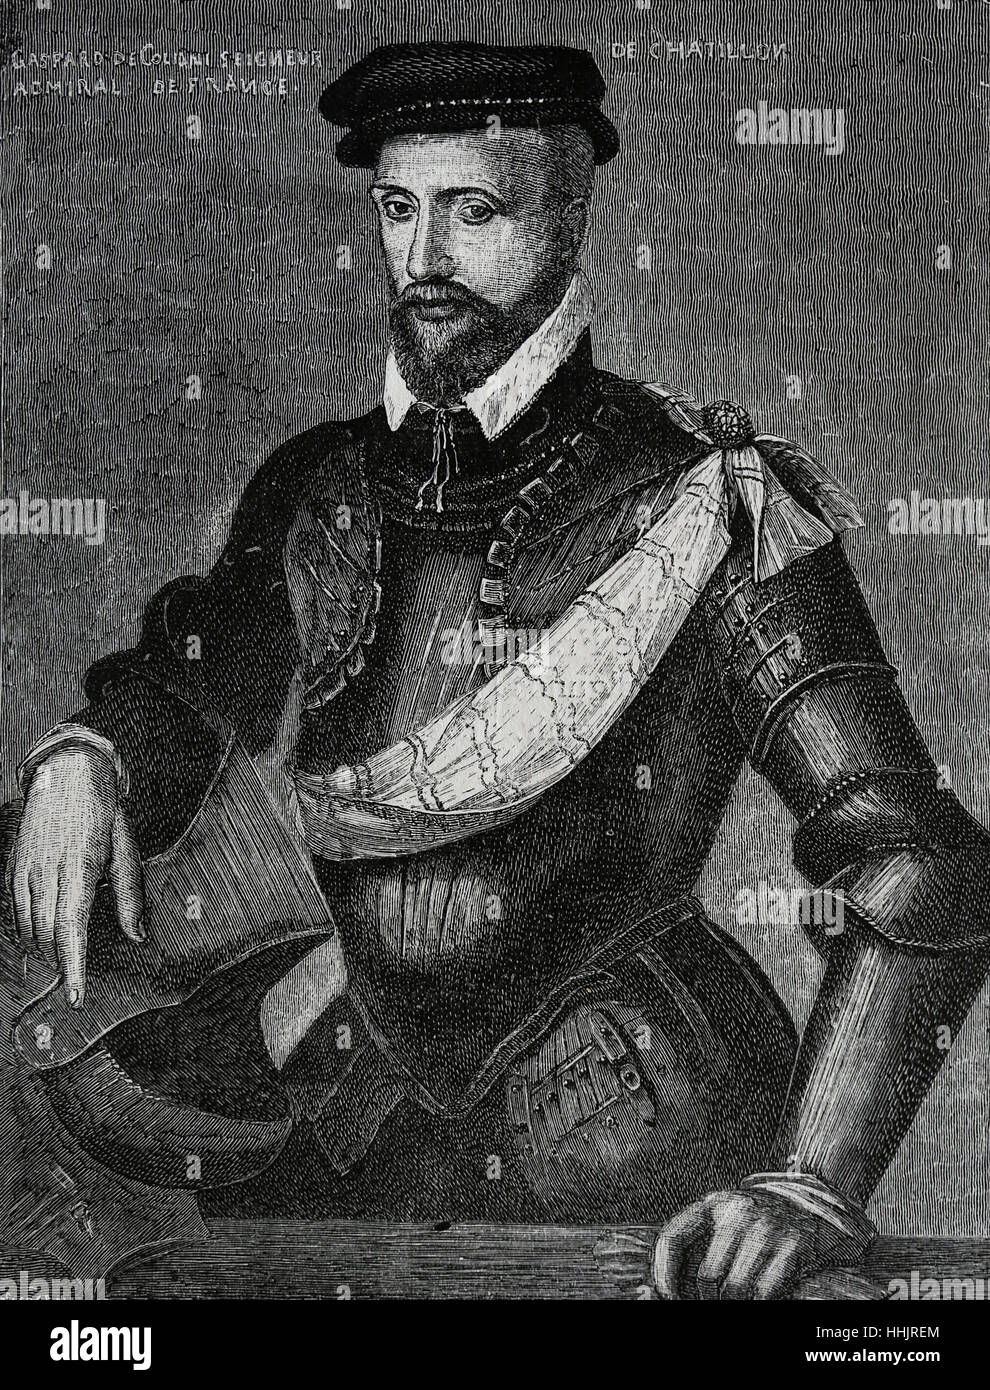 Gaspard II de Coligny (1519-1572). French nobleman and admiral, Huguenot leader in the French Wars of Religion. - Stock Image